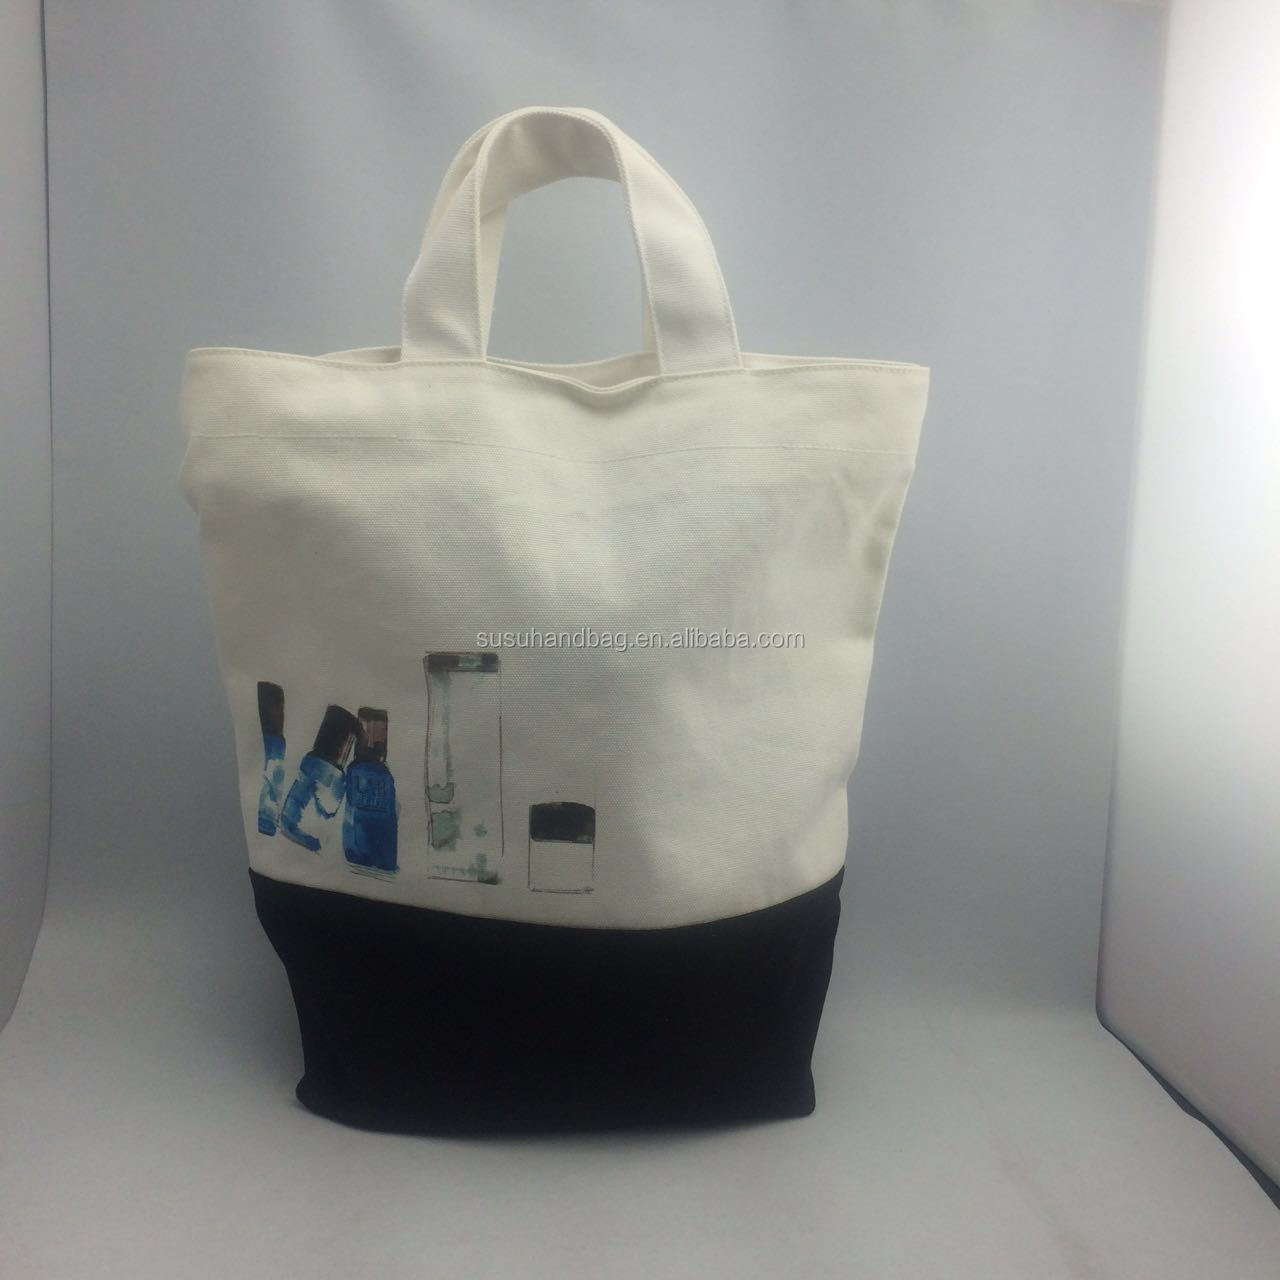 Good Quality Branded 12Oz Canvas Cotton Bag Printed